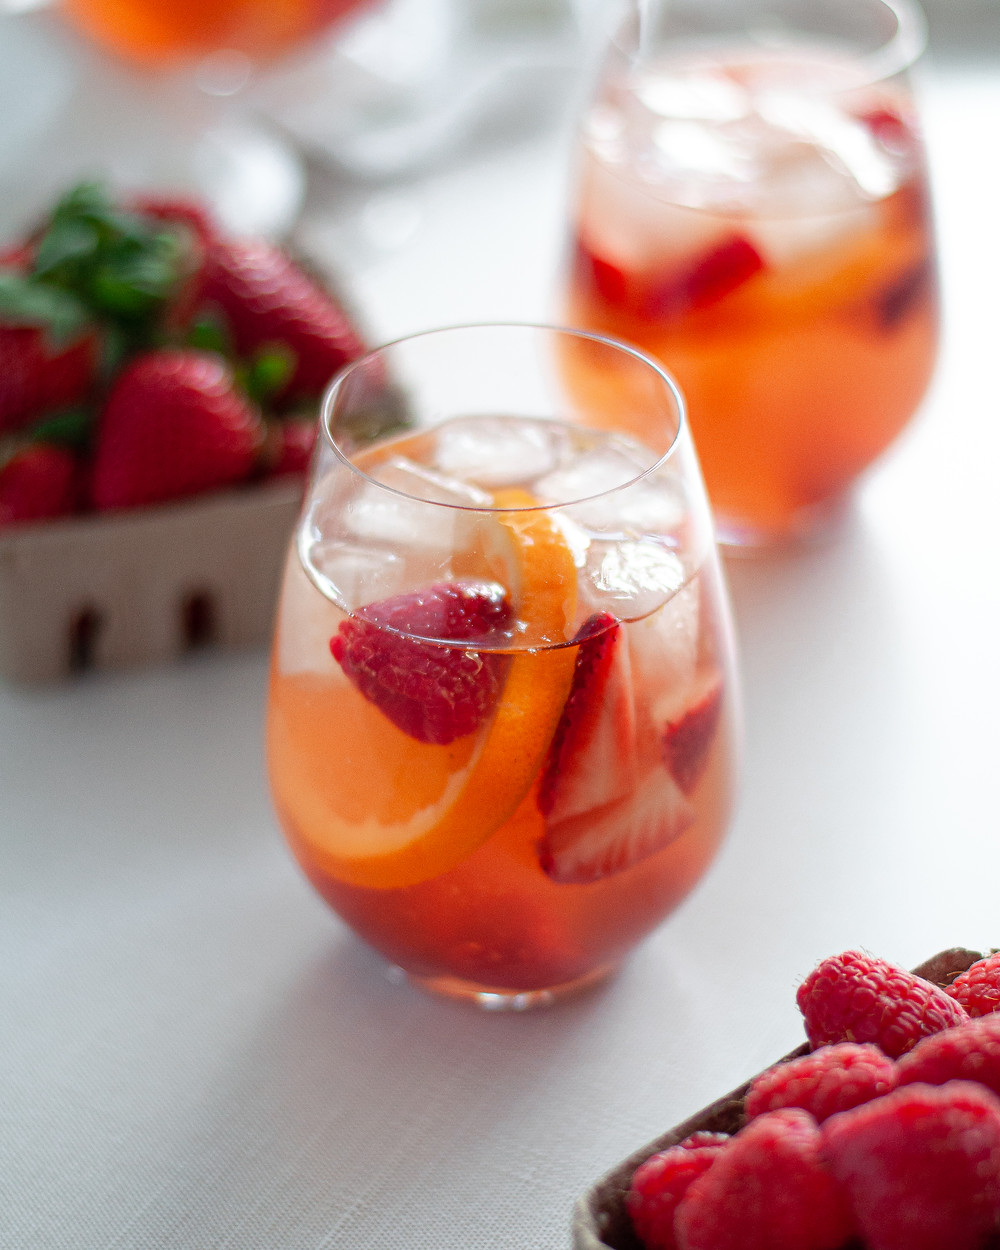 Close up of a stemless wine glass filled with rosé sangria, ice, berries, and orange slices. There is also a container of raspberries in the foreground, a container of strawberries in the background, and additional glasses of rosé sangria in the background.